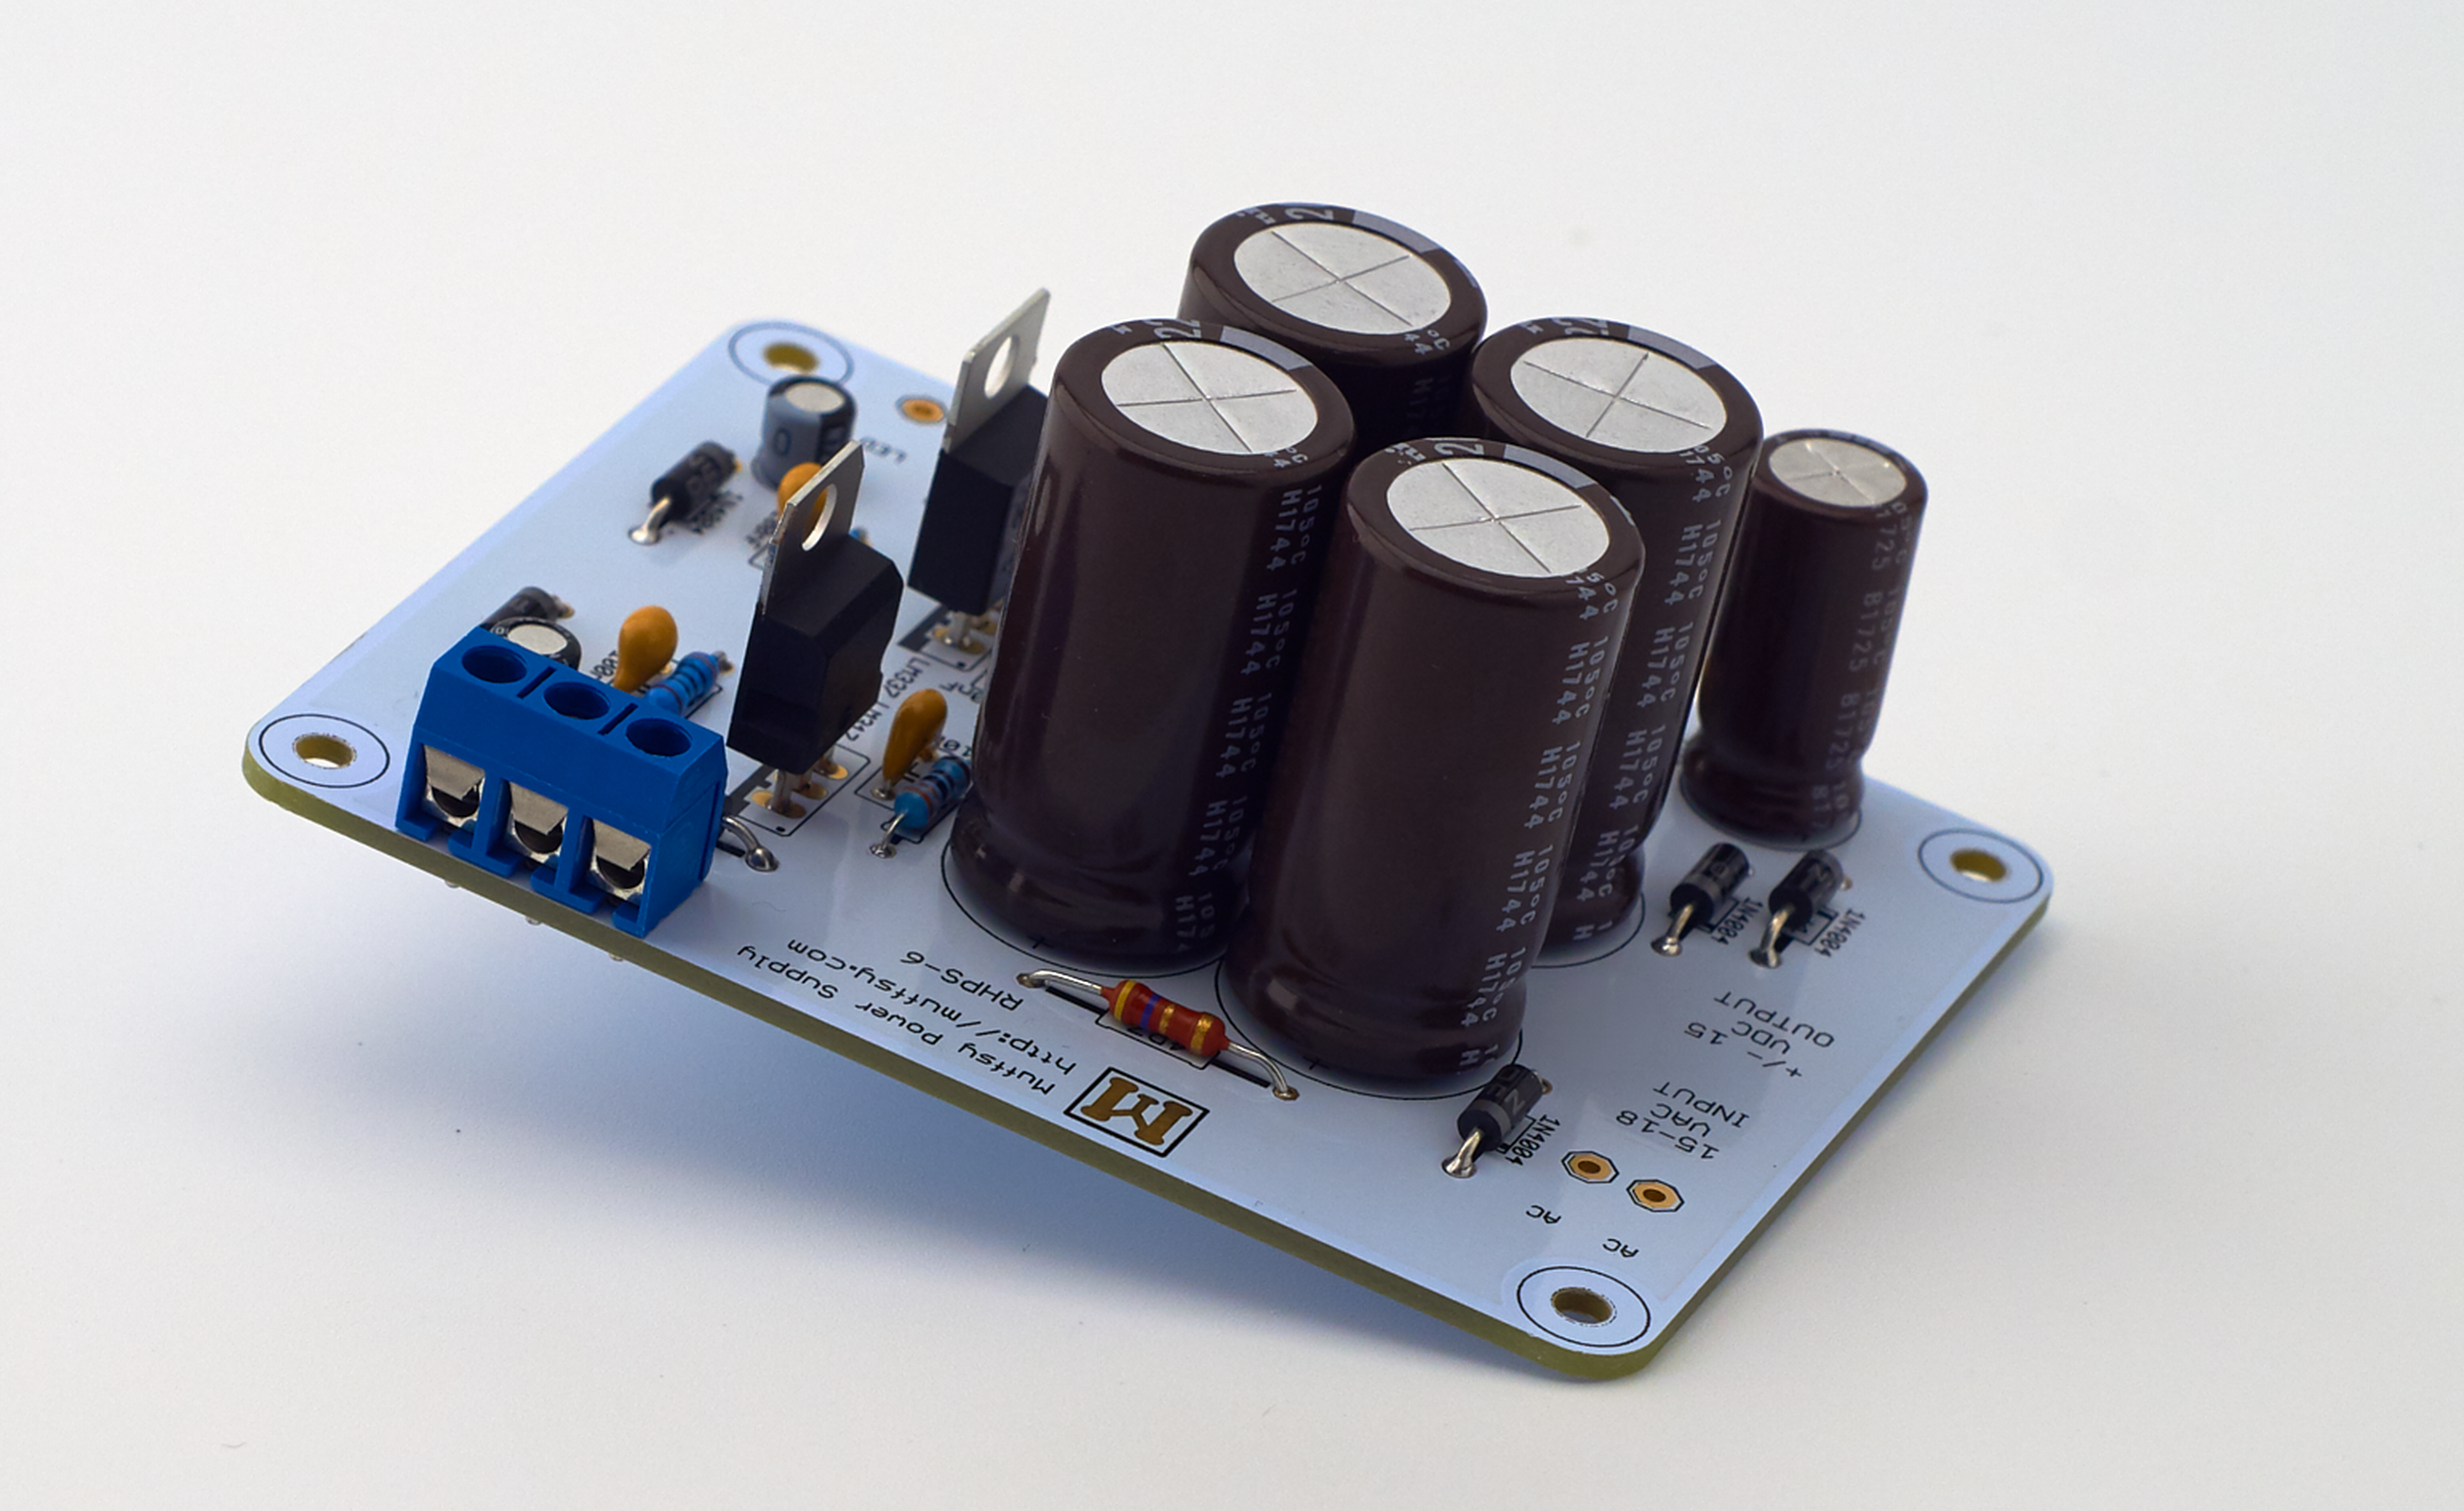 Muffsy Hifi Dual Power Supply V4 Kit From On Tindie Amp Wiring With Capacitor 1